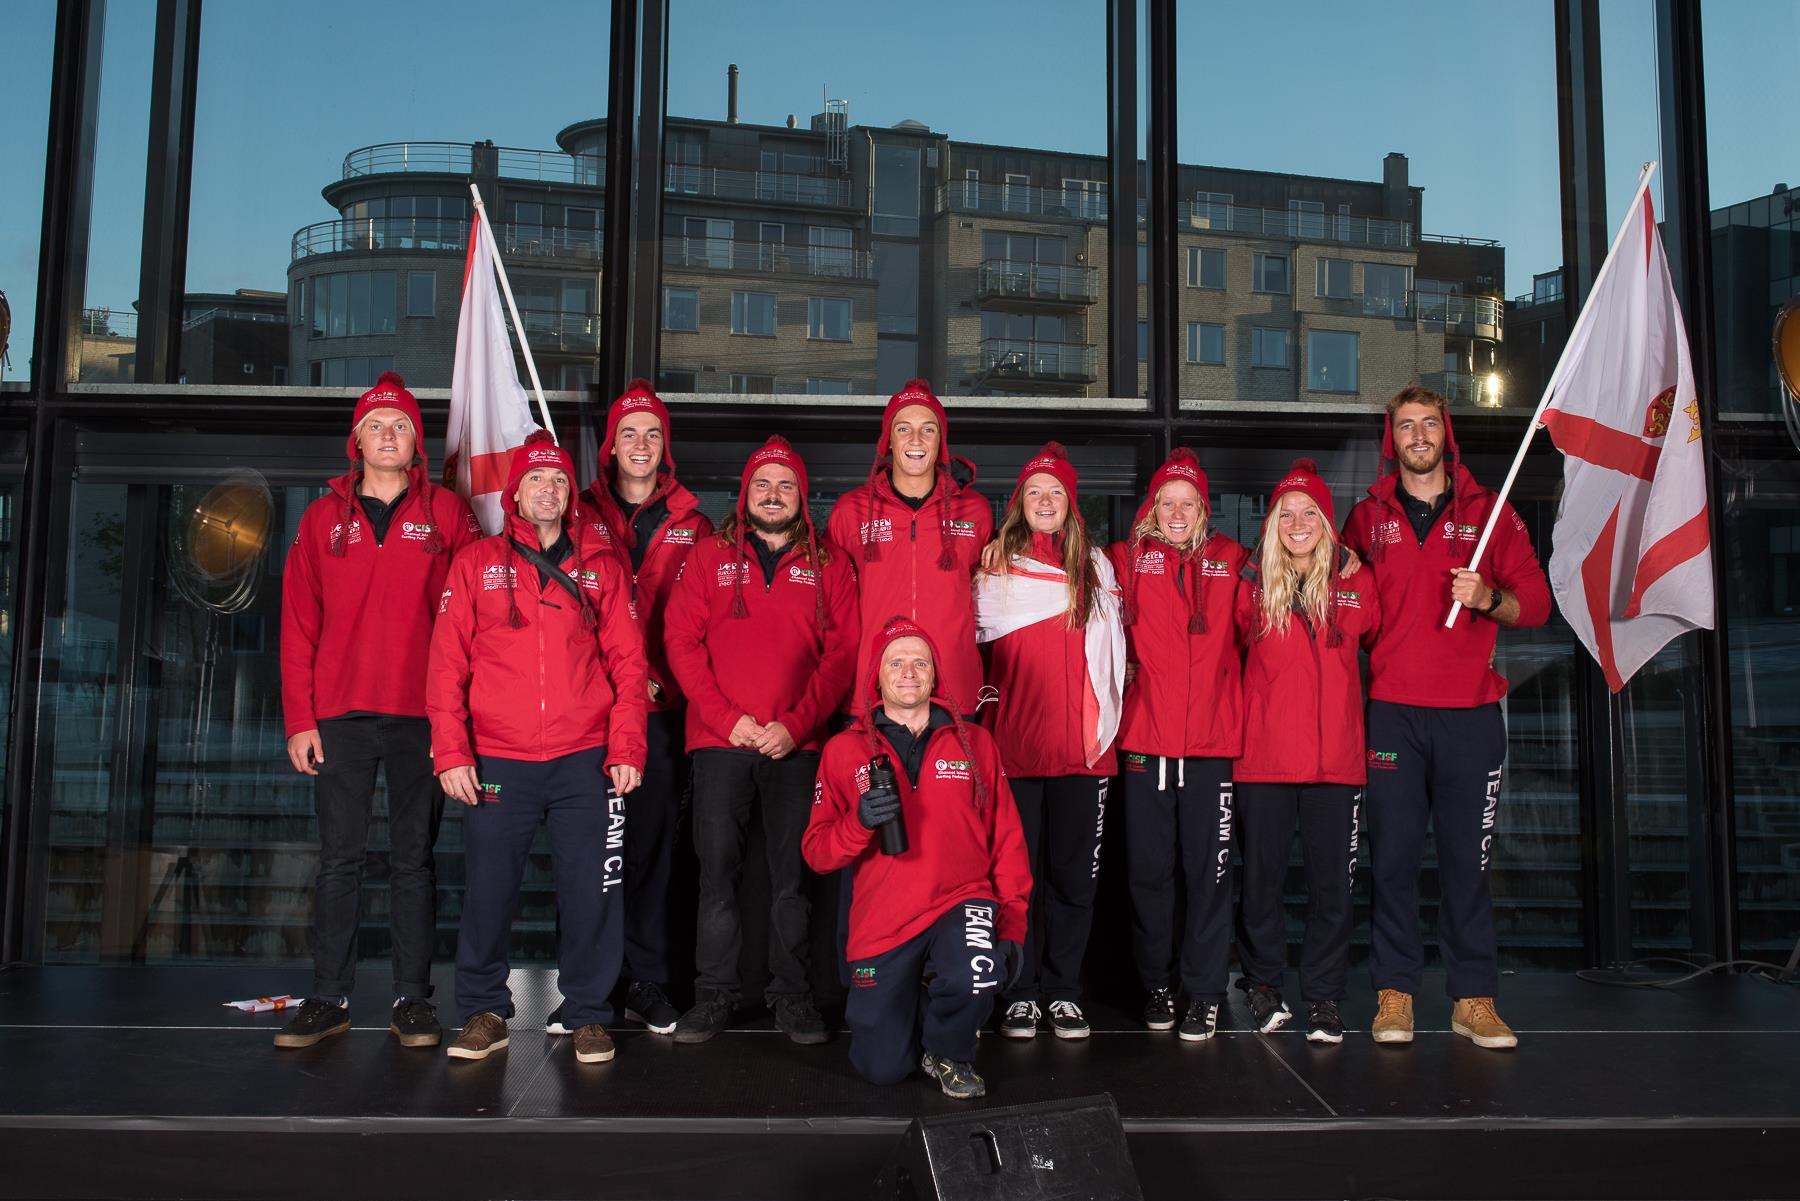 European Surfing Championships CISF team head to Bore Beach, Norway